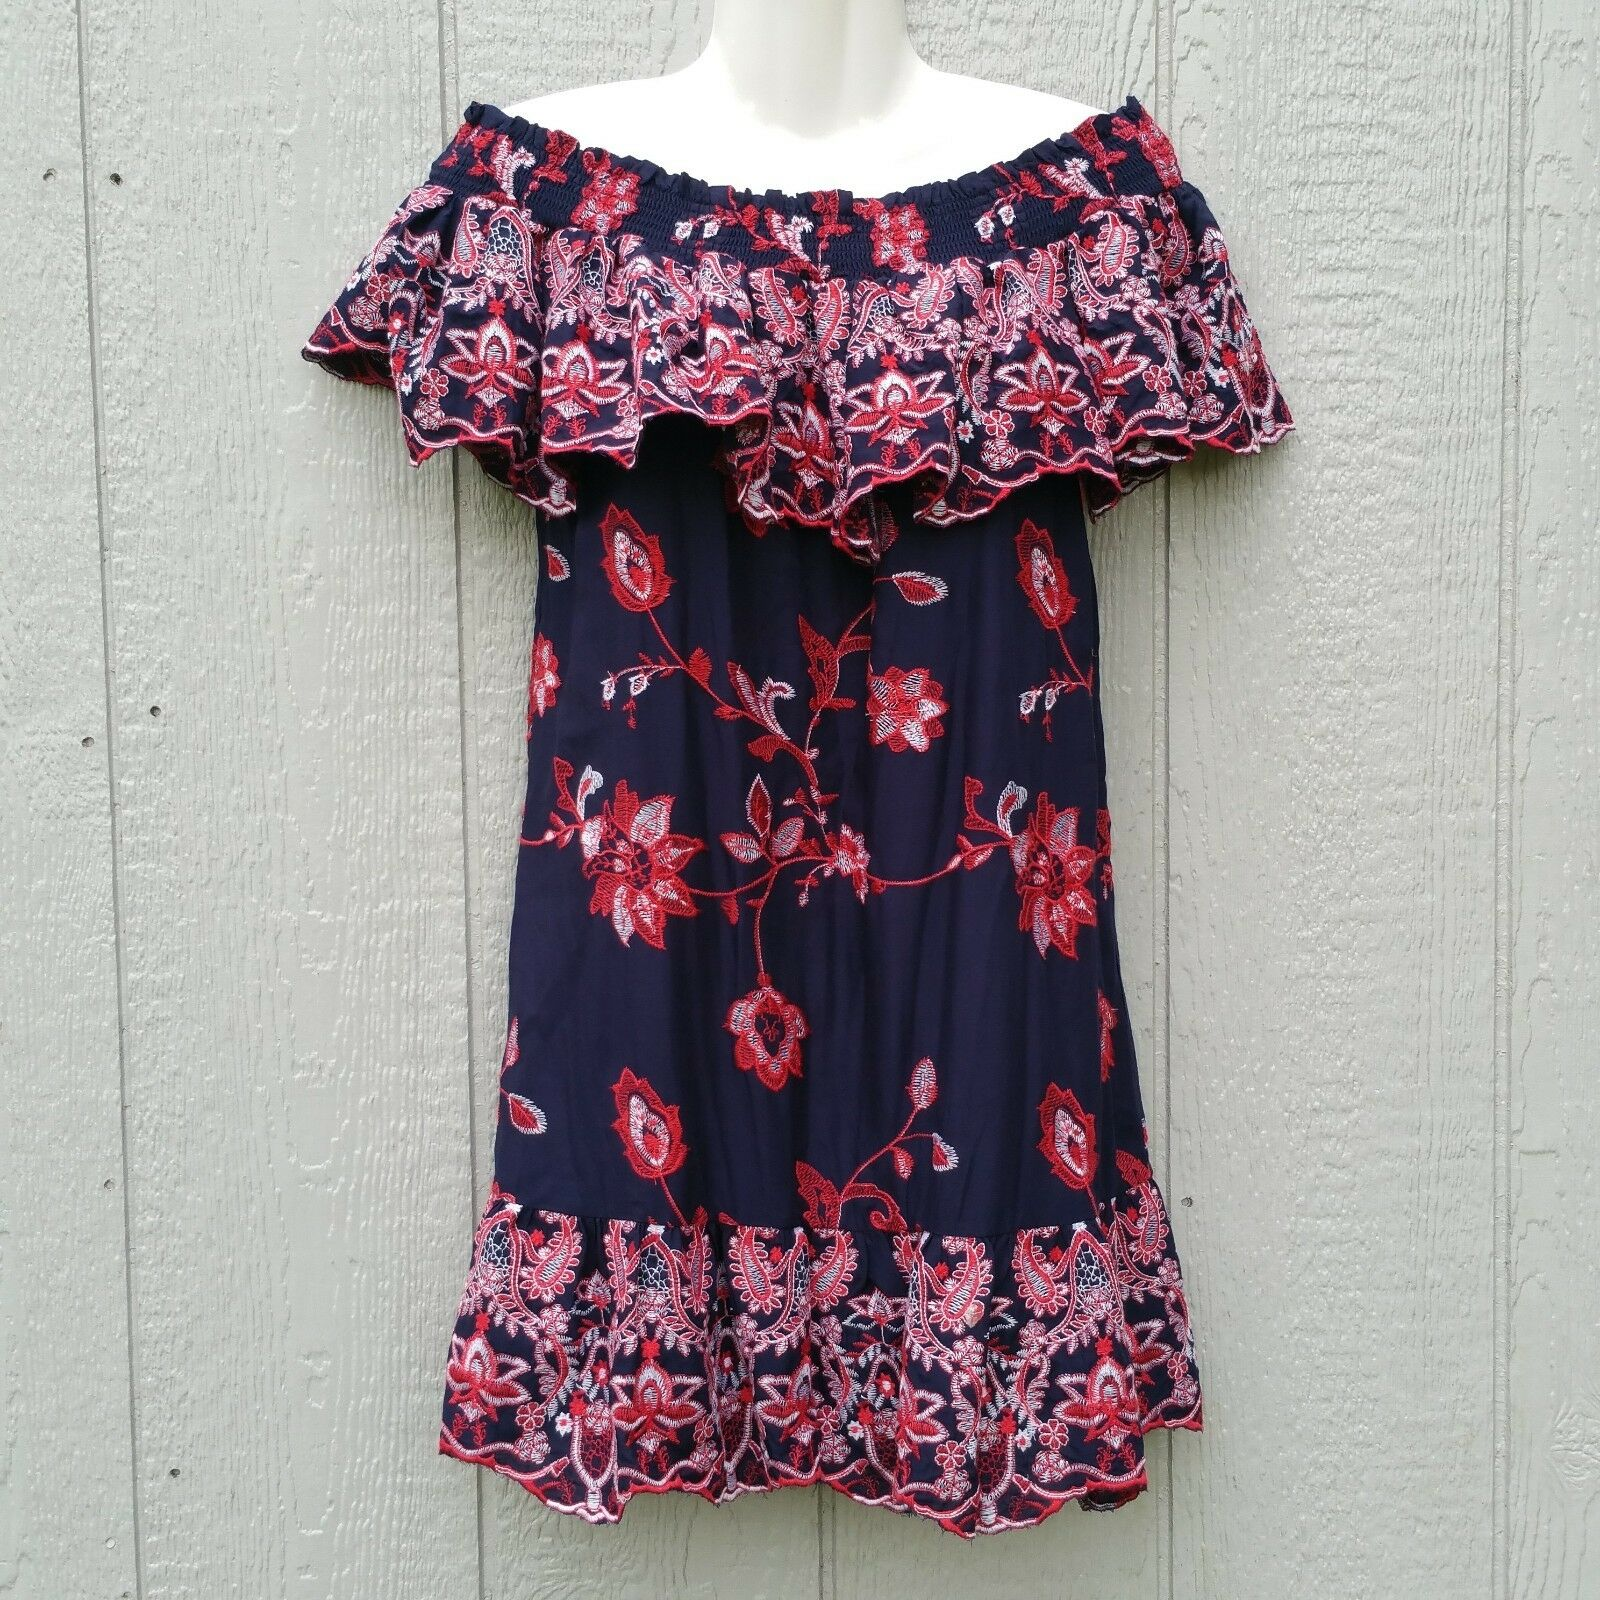 Parker Women's Dress Size XS Embroidered Midi Ruffle Cold Shoulder Floral